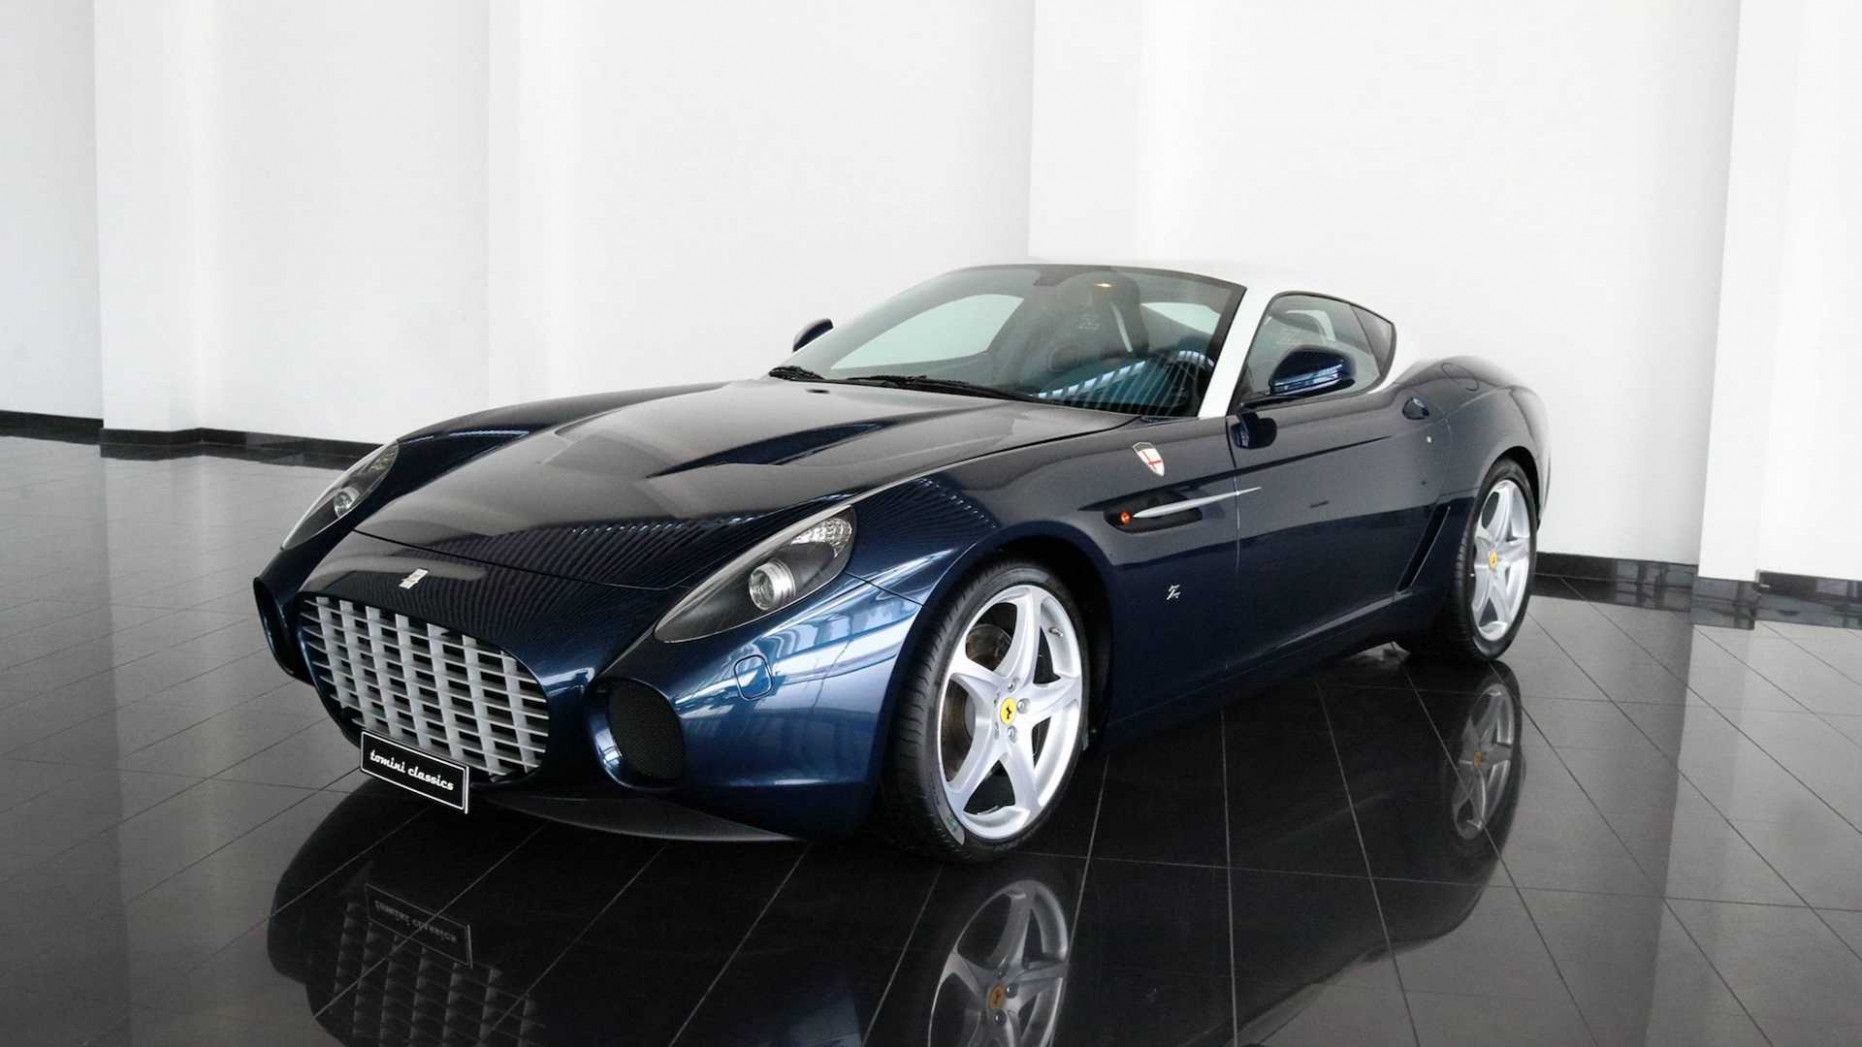 Check Out The 100-Of-100 Manual Ferrari 10 GTZ Nibbio Zagato - ferrari zagato 2020